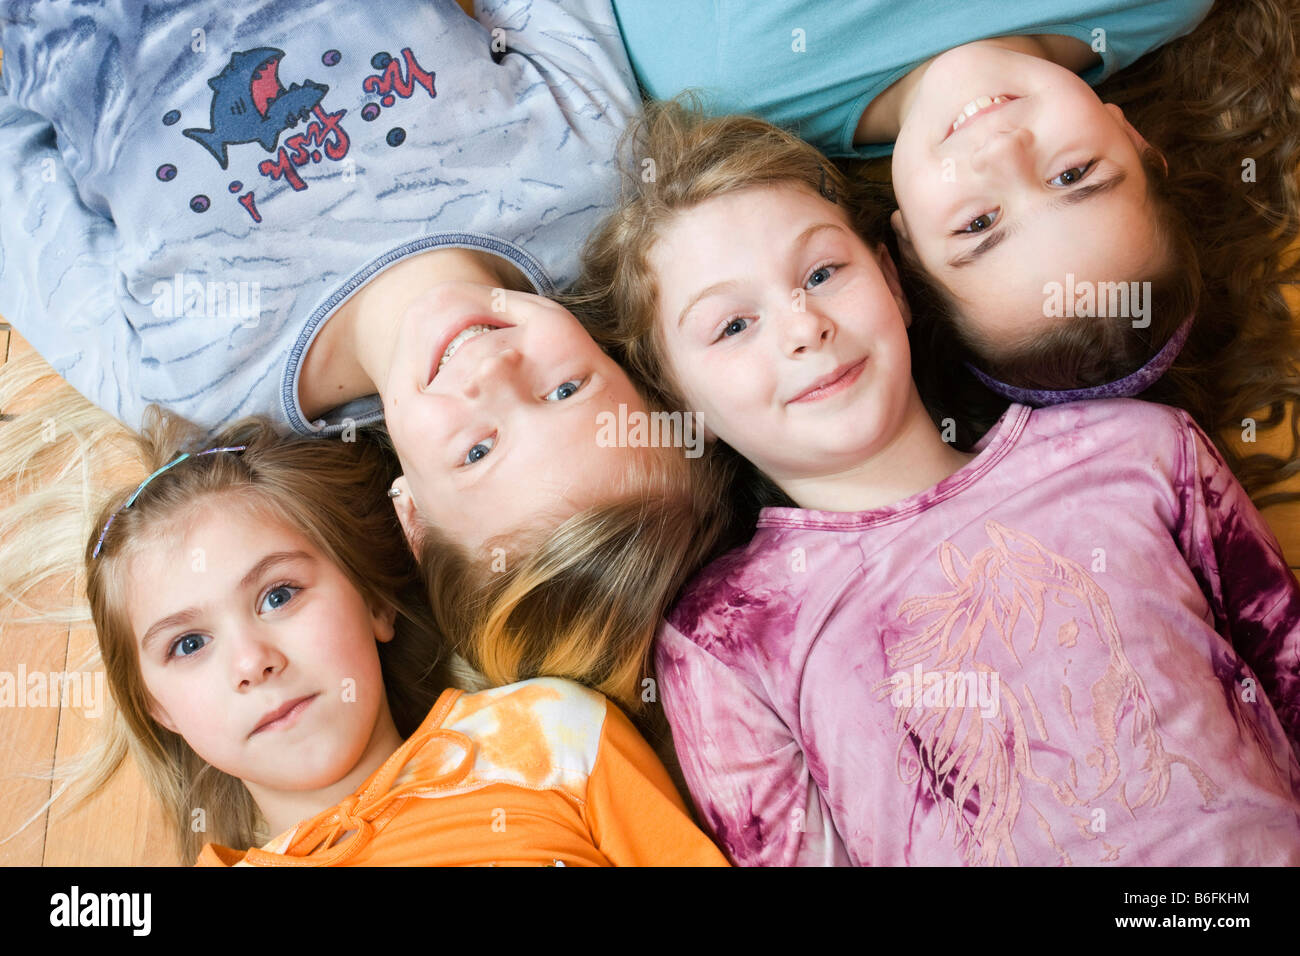 Group of four little girls lying on the floor, from the left 6, 11, 9 and 10 years old, bird's-eye view Stock Photo